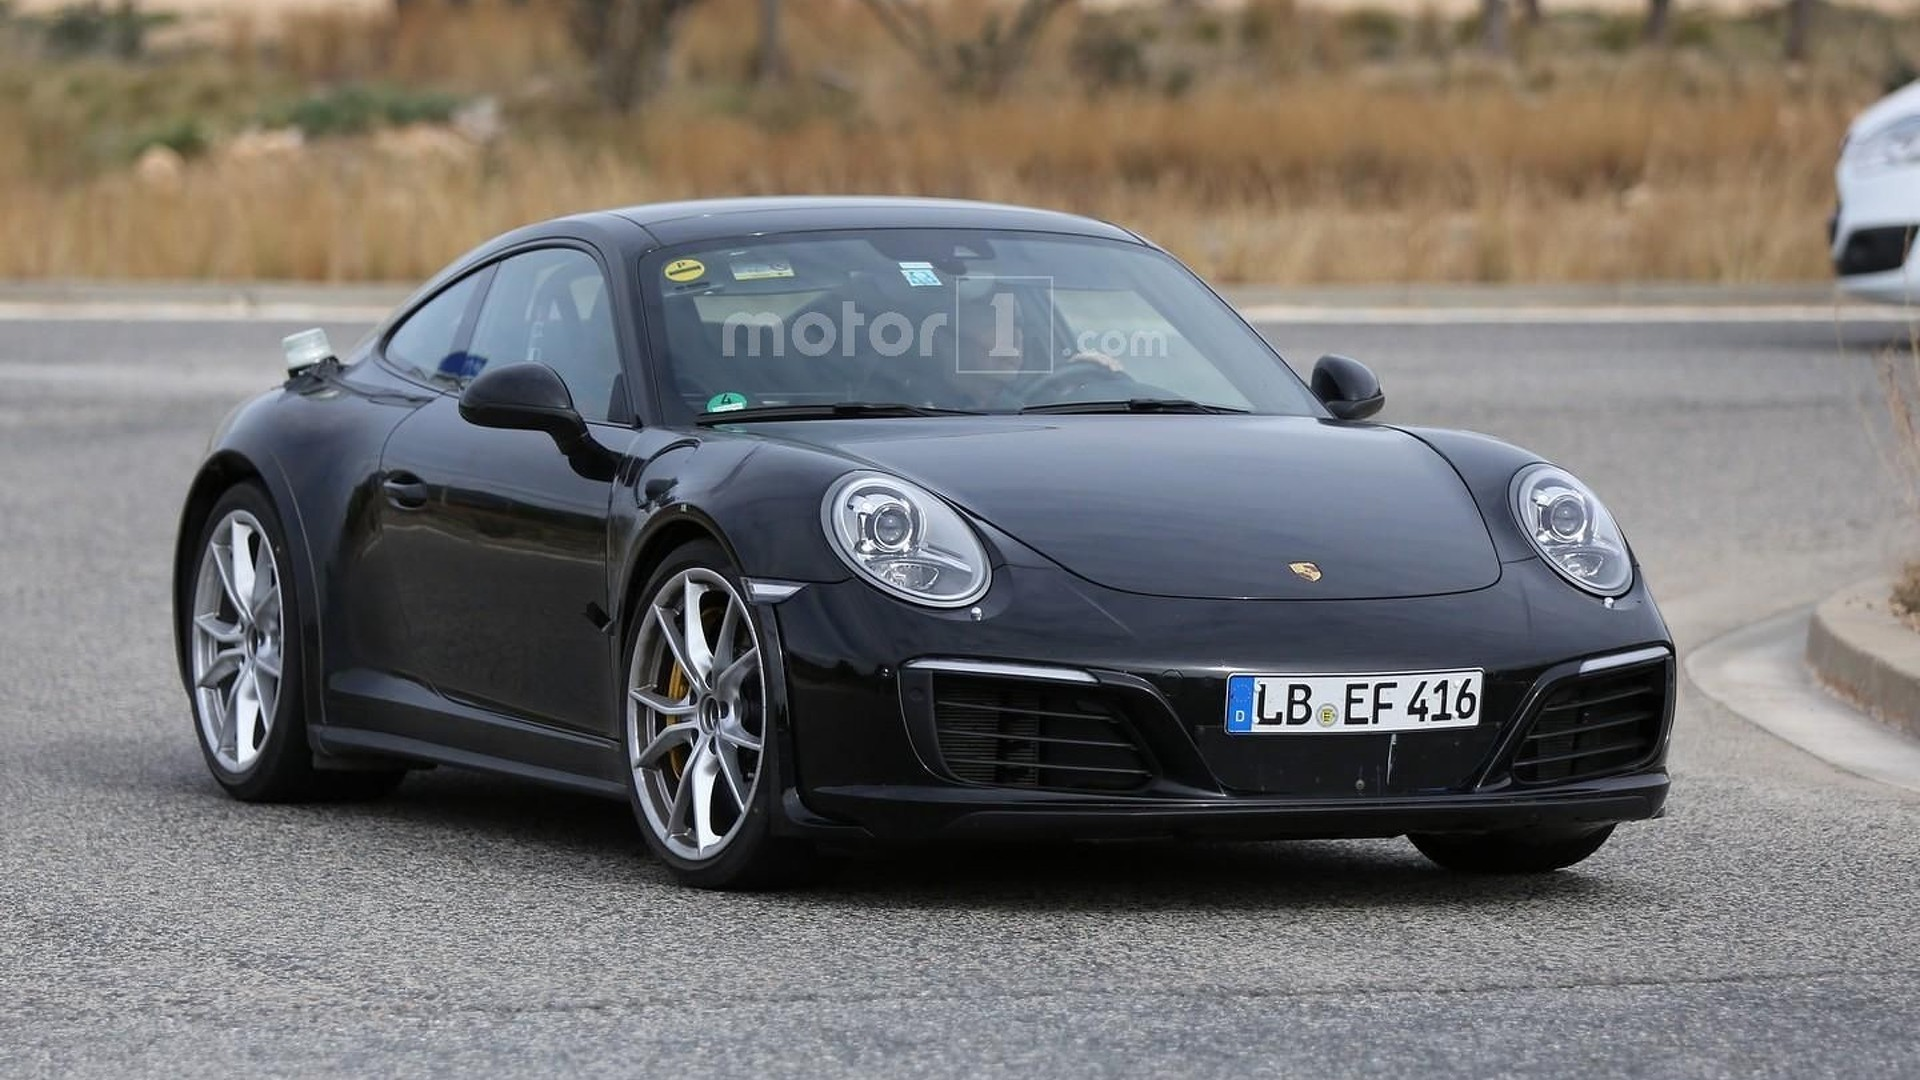 2018 Porsche 911 test mule spied with wider wheel arches